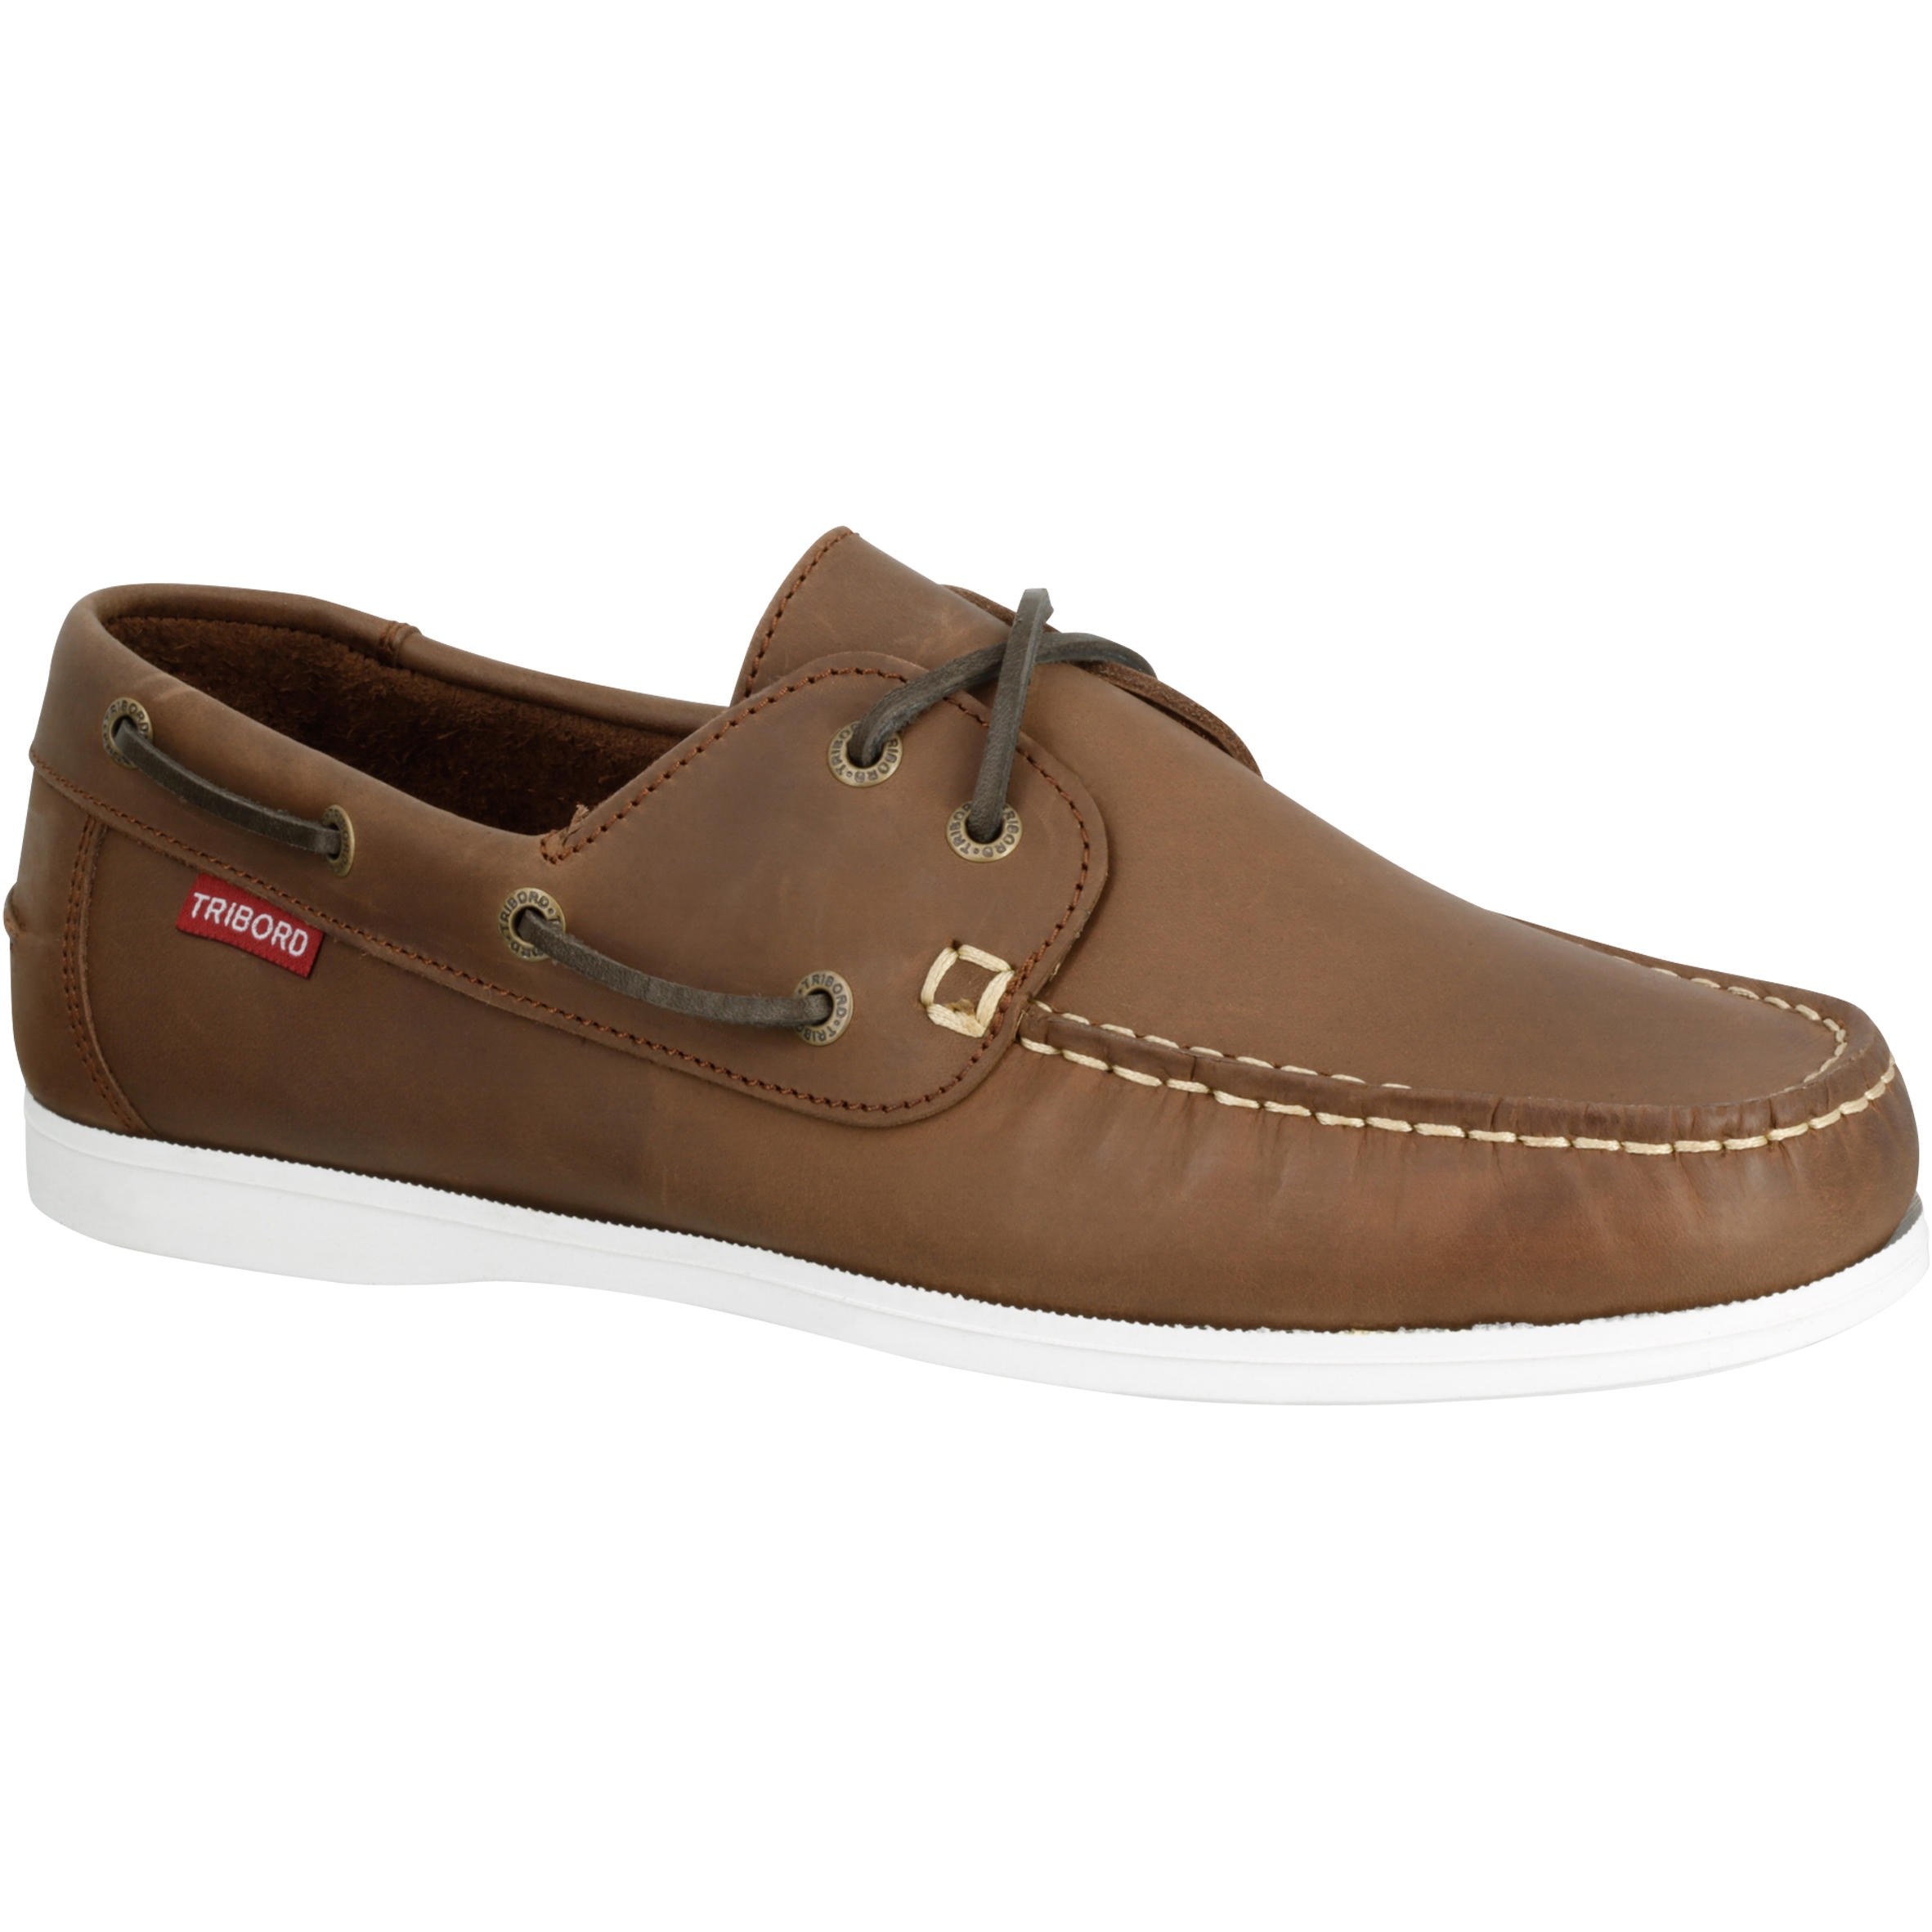 CR500 Men's Leather Boat Shoes - Brown